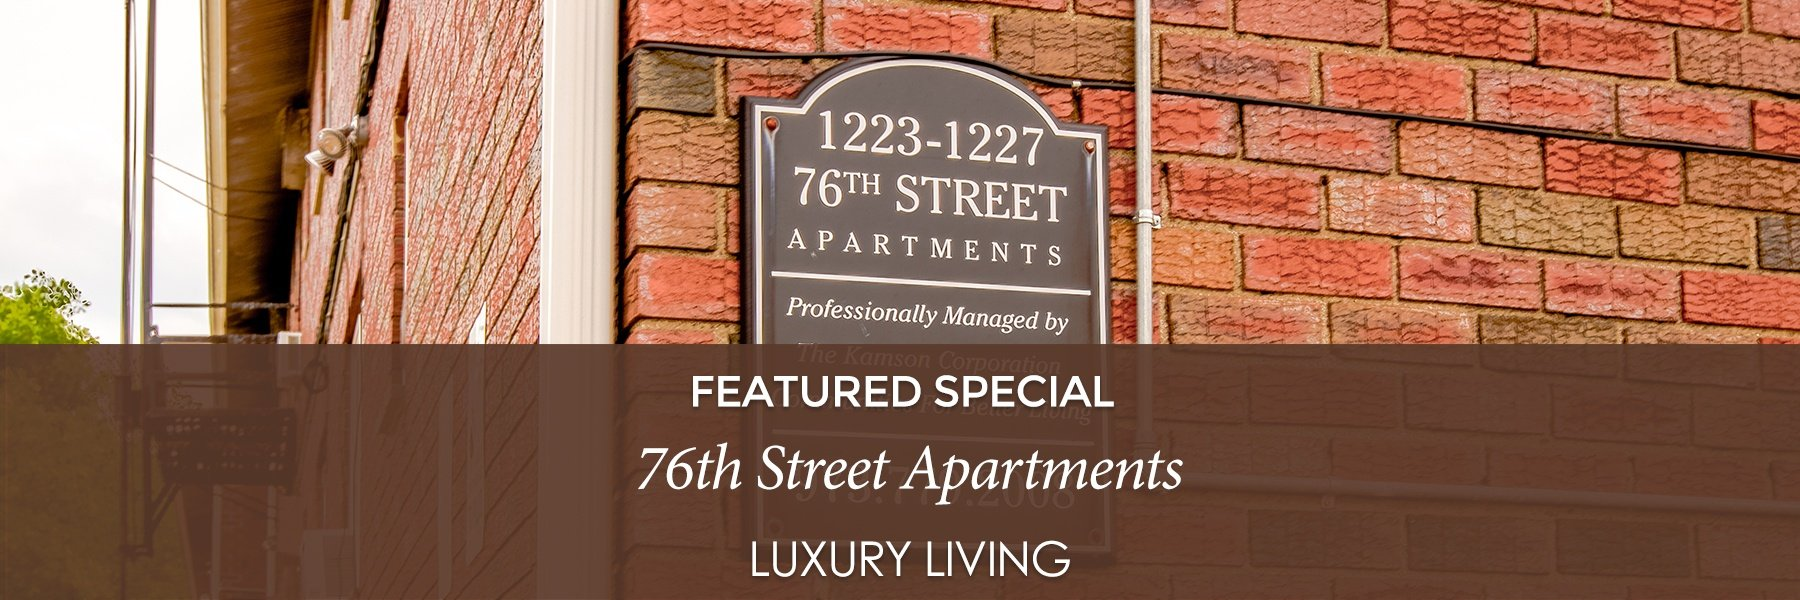 76th Street Apartments For Rent in North Bergen, NJ Specials